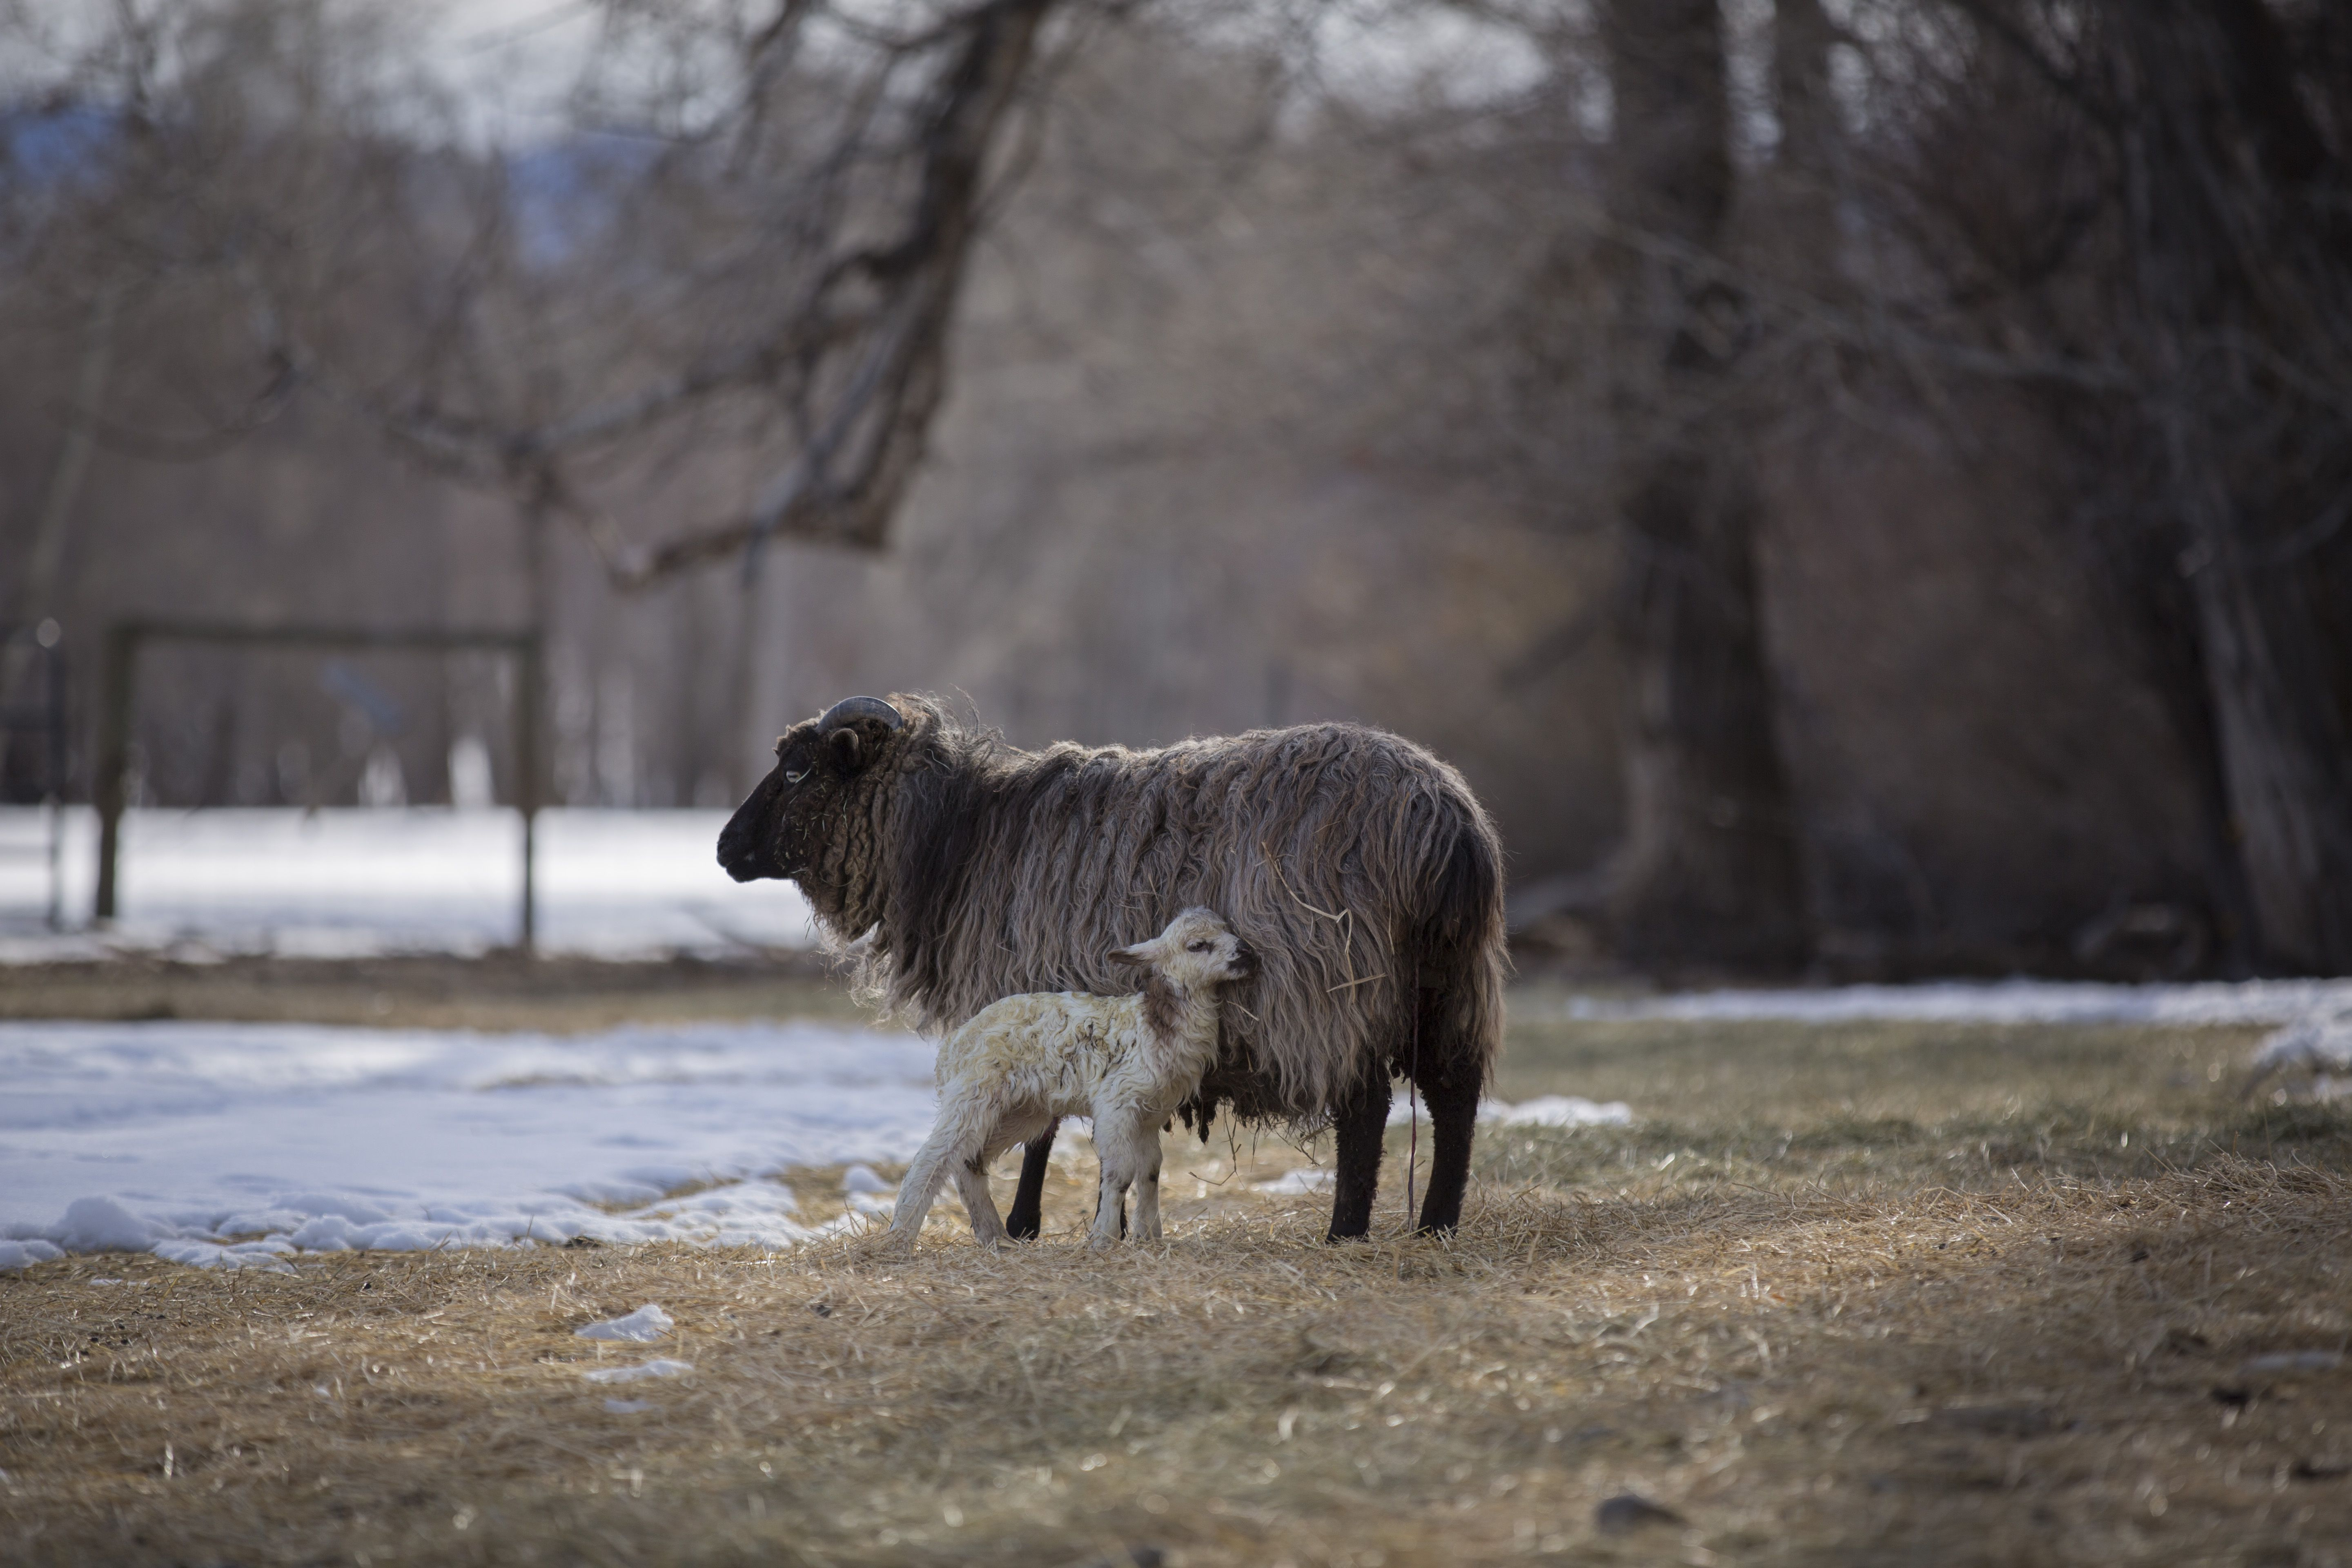 Montana's Spring Lambs - Just minutes old, a newborn lamb rests up against its mother. Credit: Catherine Yrisarri   © The Weather Channel